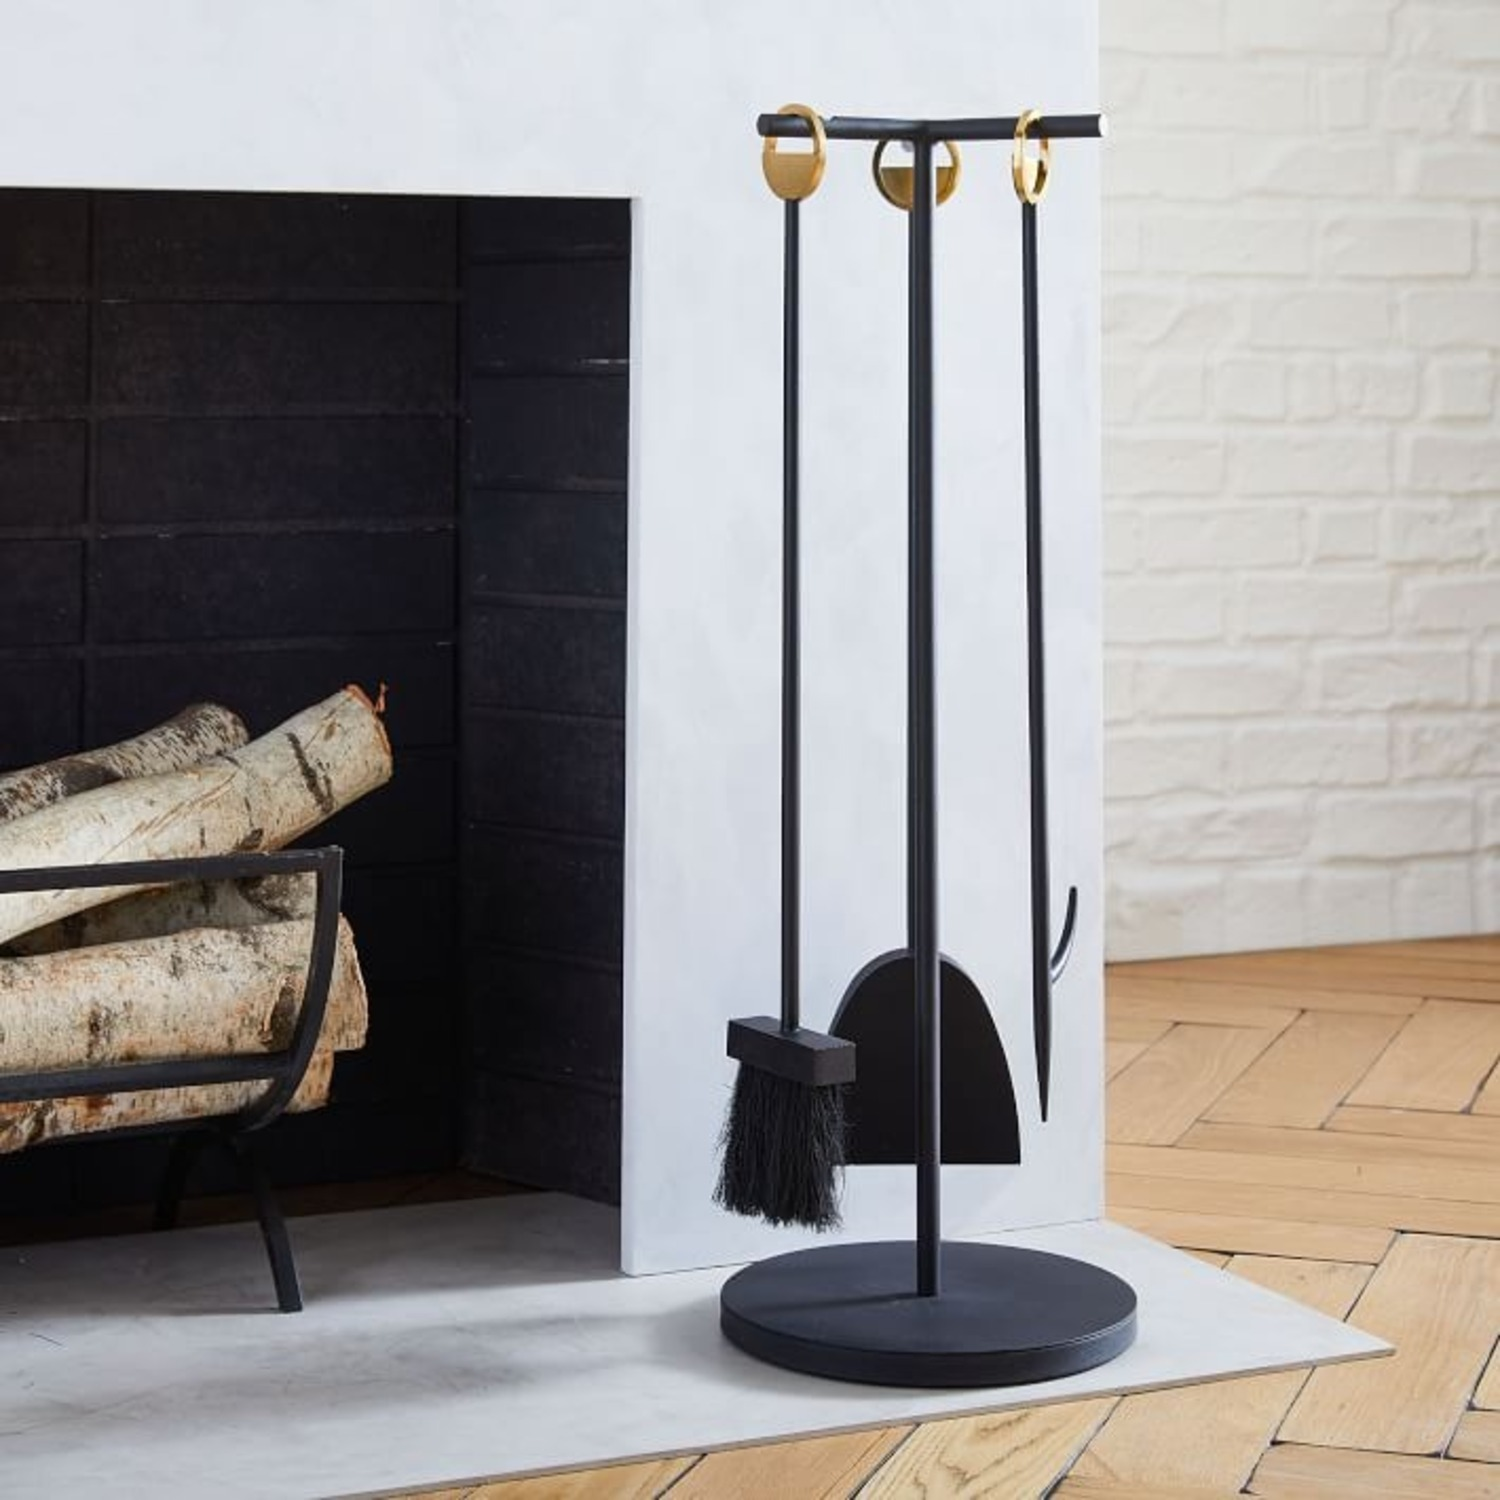 West Elm Cut Out Fireplace Tools - image-1